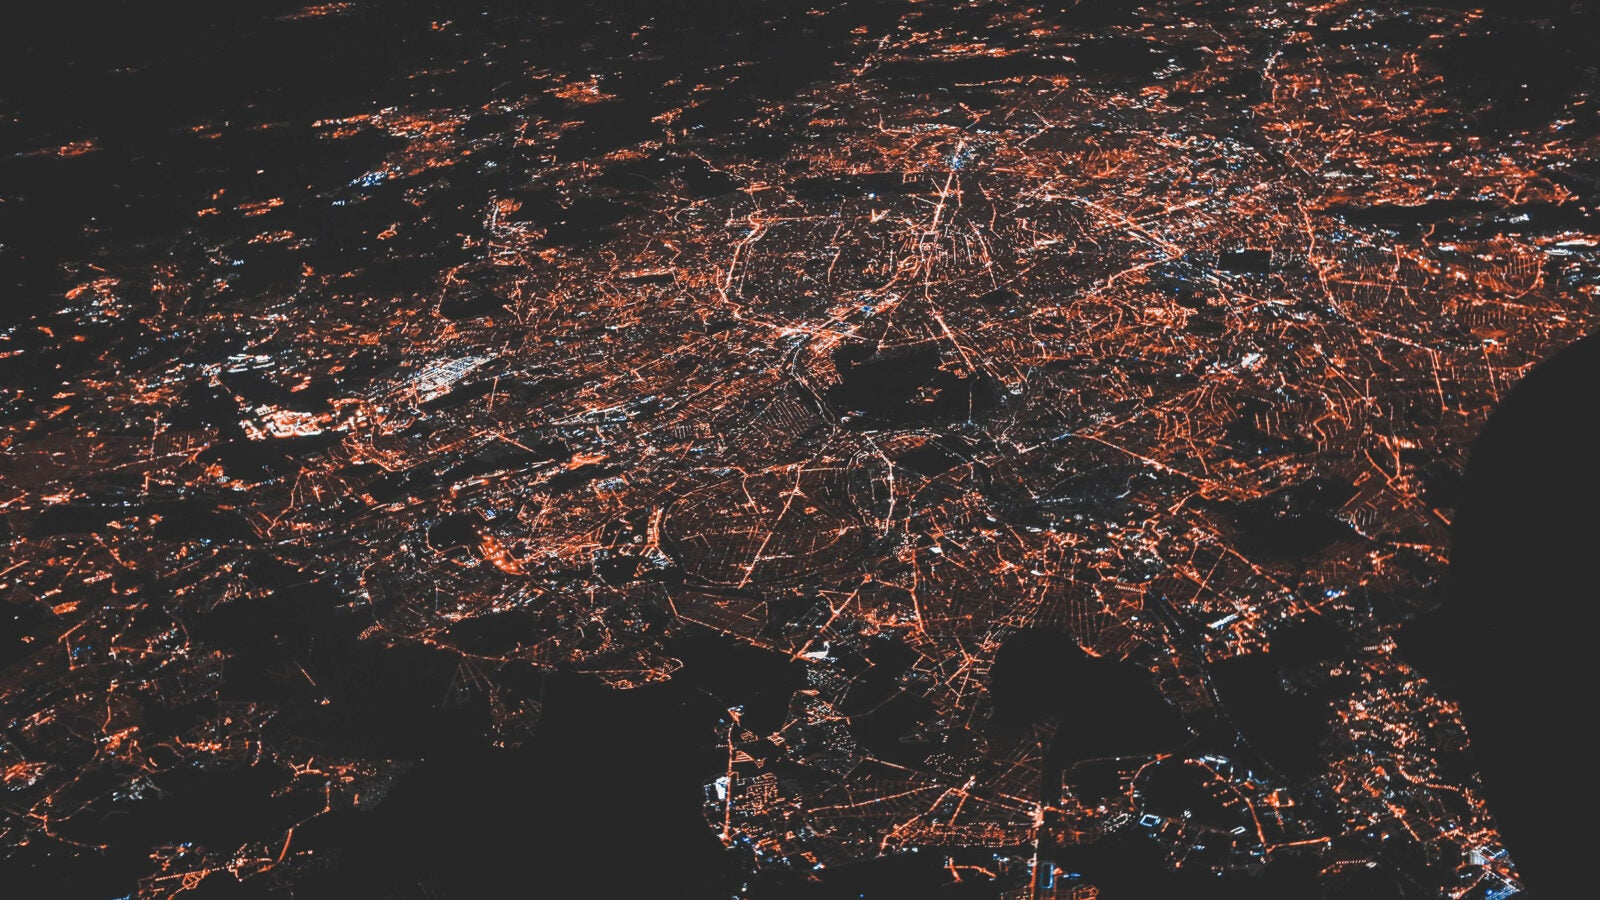 View from above of city network of lights.